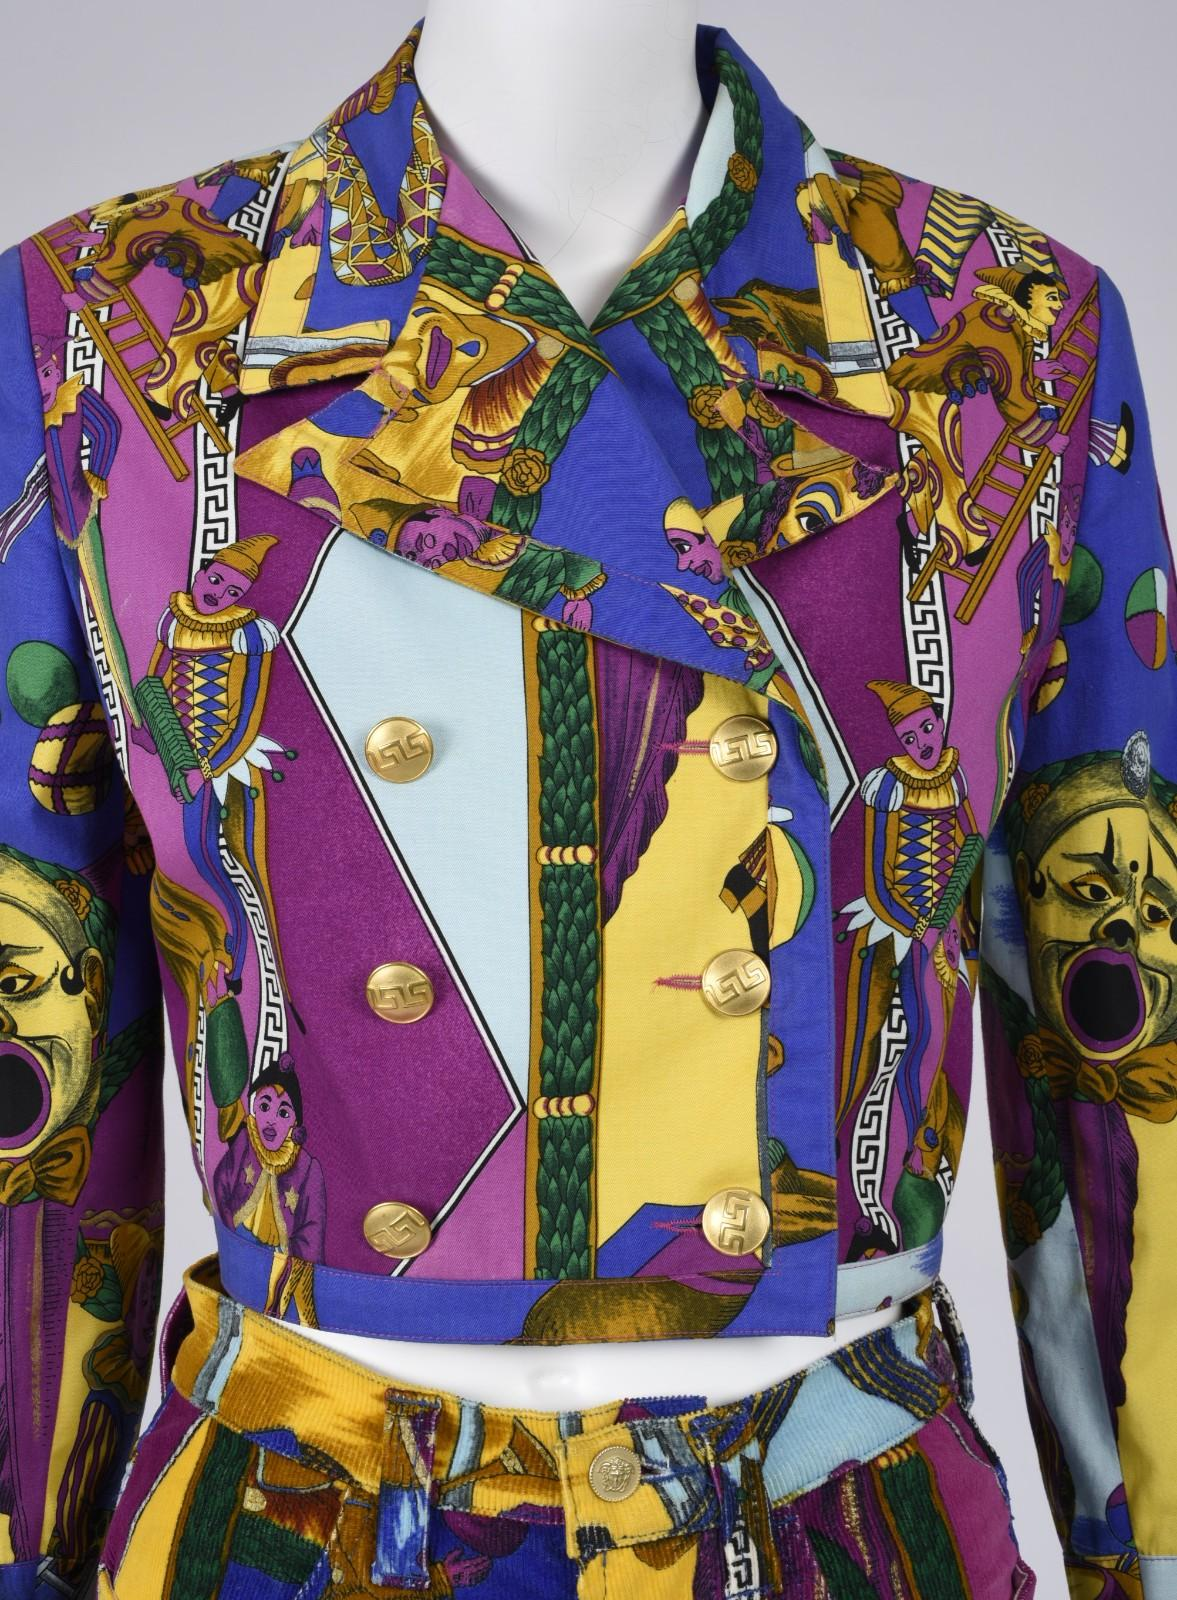 Gianni Versace, Day ensemble, ca. 1990s.Cotton twill, corduroy, purple and blue ornate pattern.